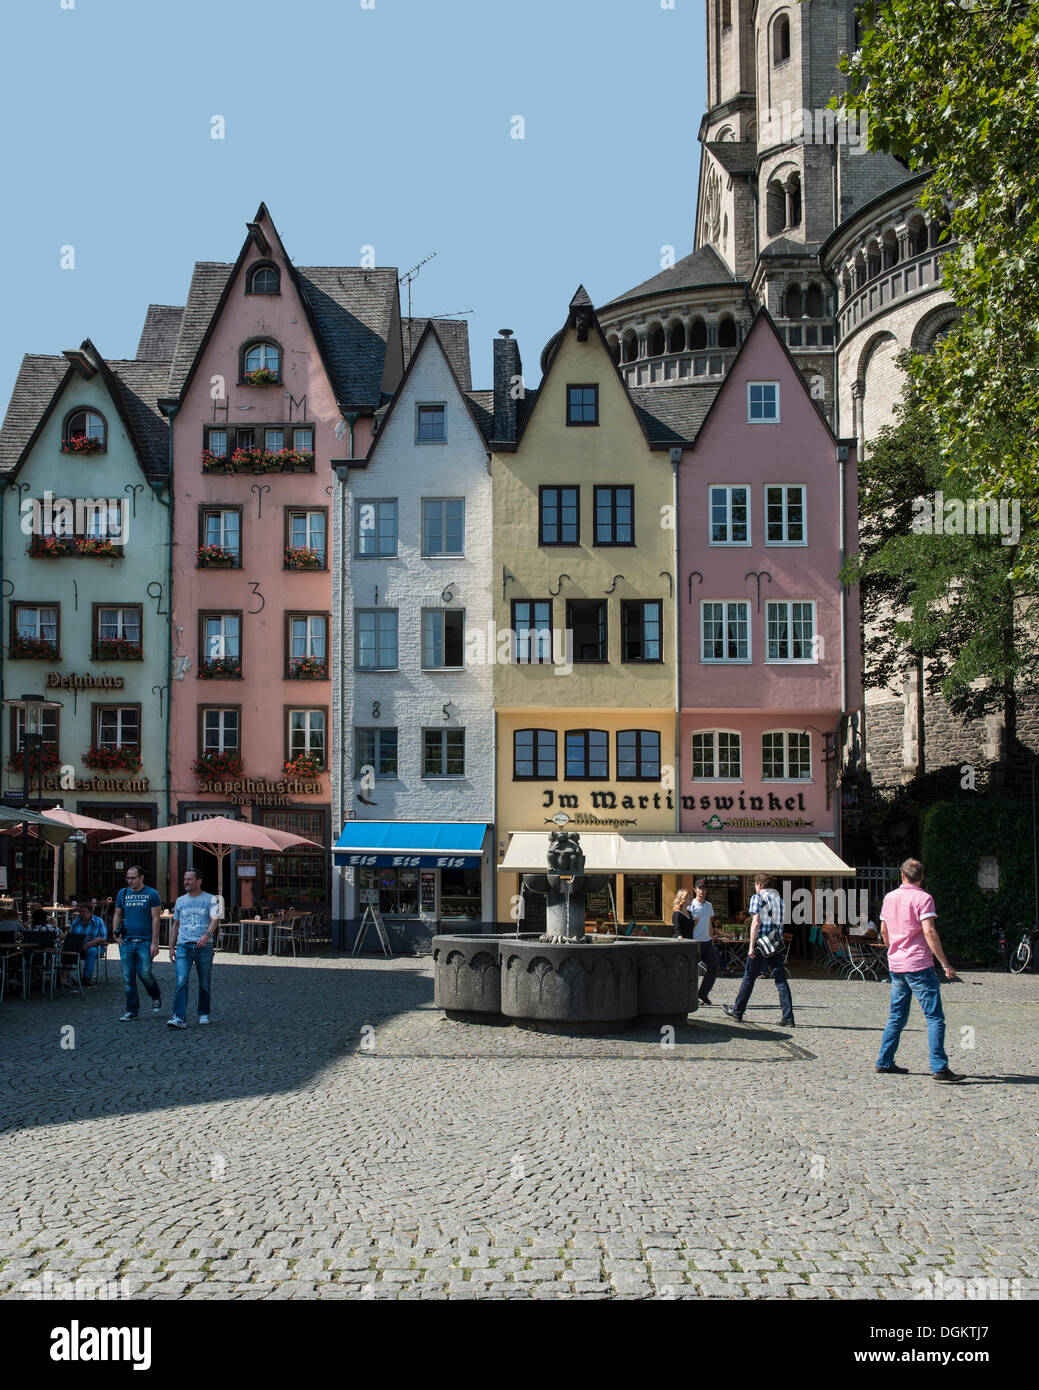 Colourful row of houses in Martinswinkel, with the Romanesque Great St. Martin Church at the rear, Am Fischmarkt - Stock Image